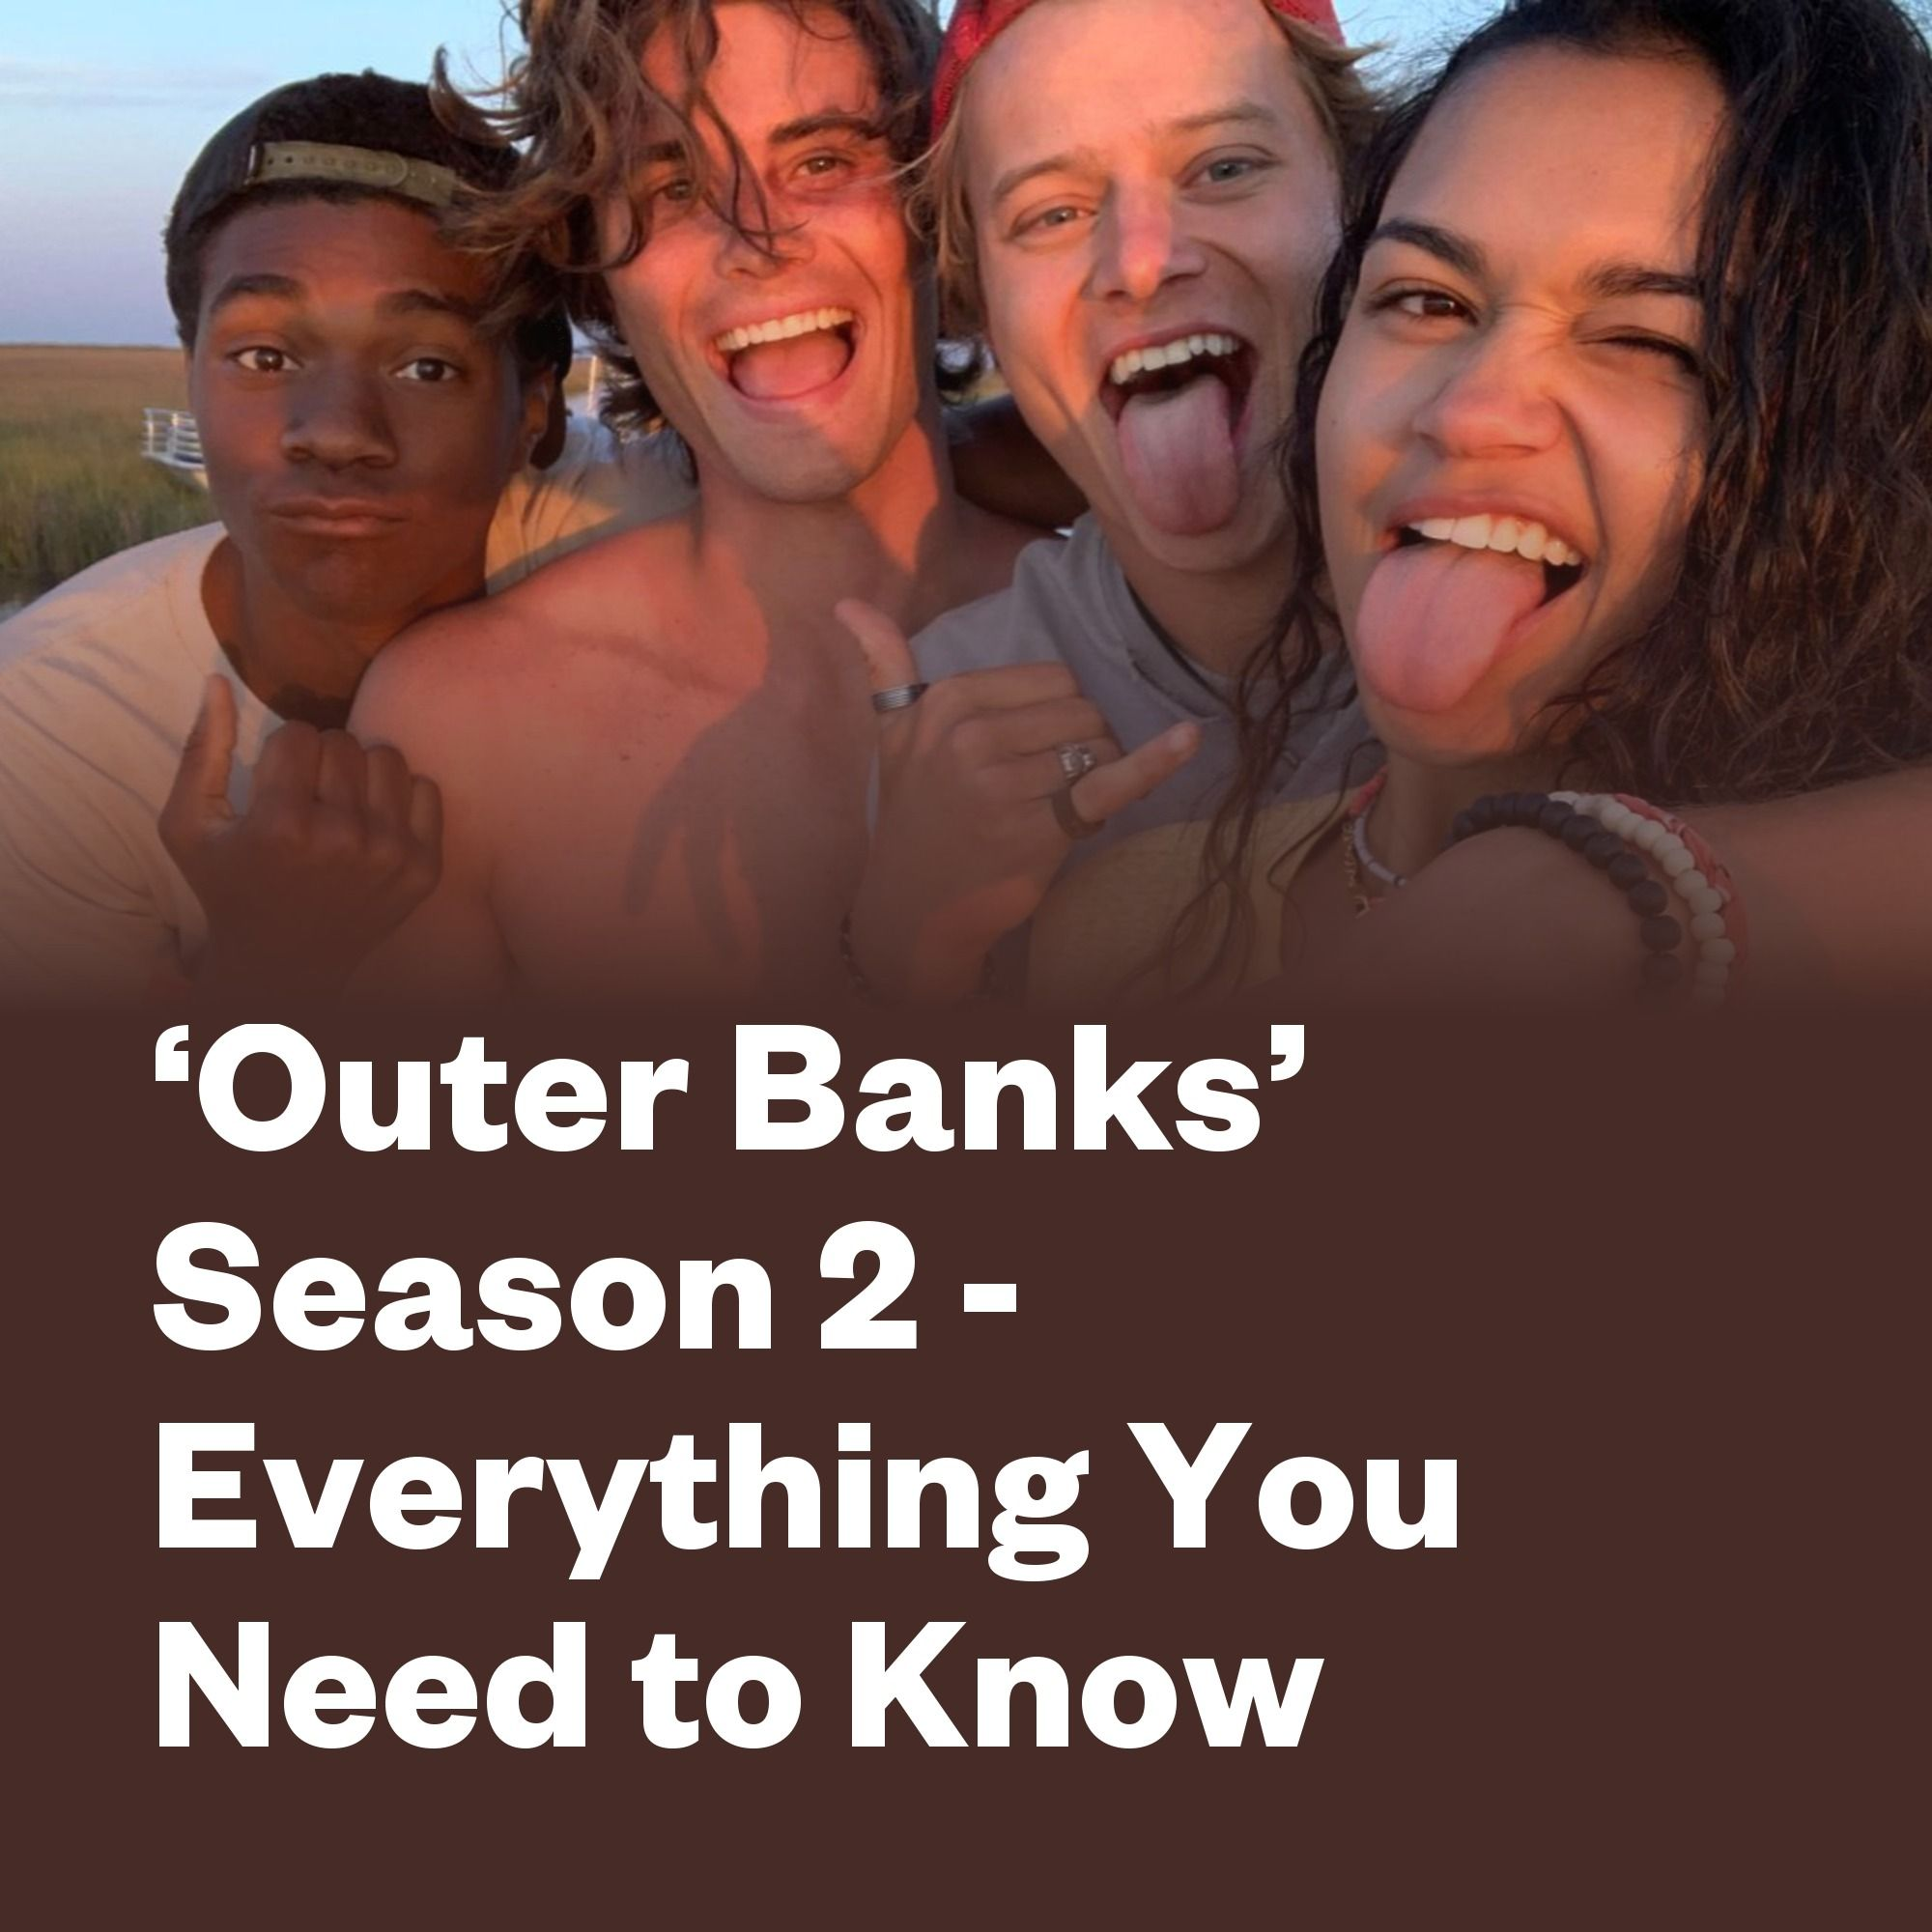 Outer Banks Season 2 Is Confirmed Here S What We Know About The Pogues Next Adventure Outer Banks Sarah Johns The Pogues